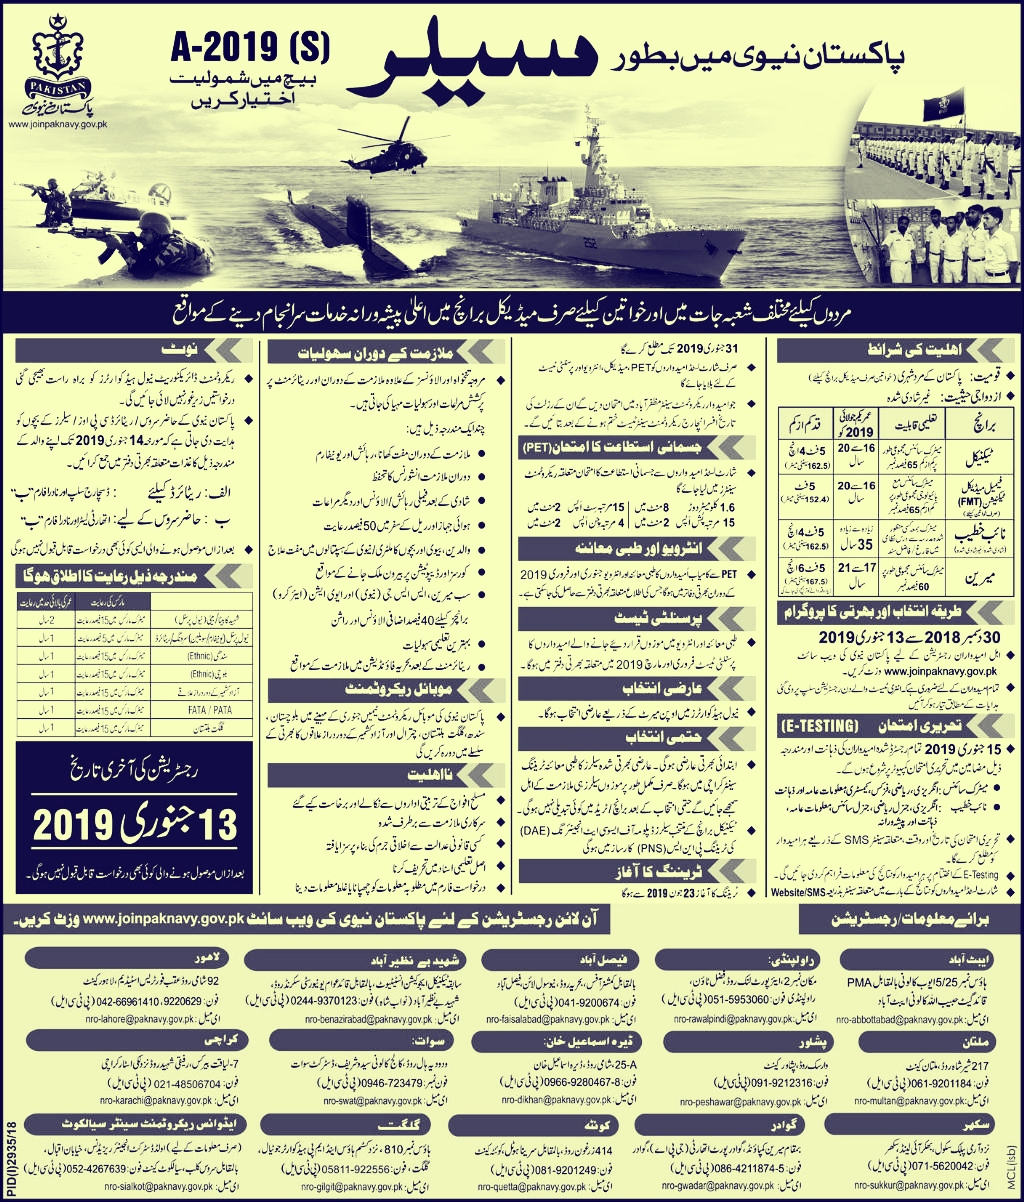 join pak navy civilian join Pakistan Navy as Salor 2019 join pak navy result join pak navy registration slip 2019 join pak navy 2019 online registration pak navy online registration slip pak navy result 2019 pak navy technical sailor salary pak navy jobs 2019